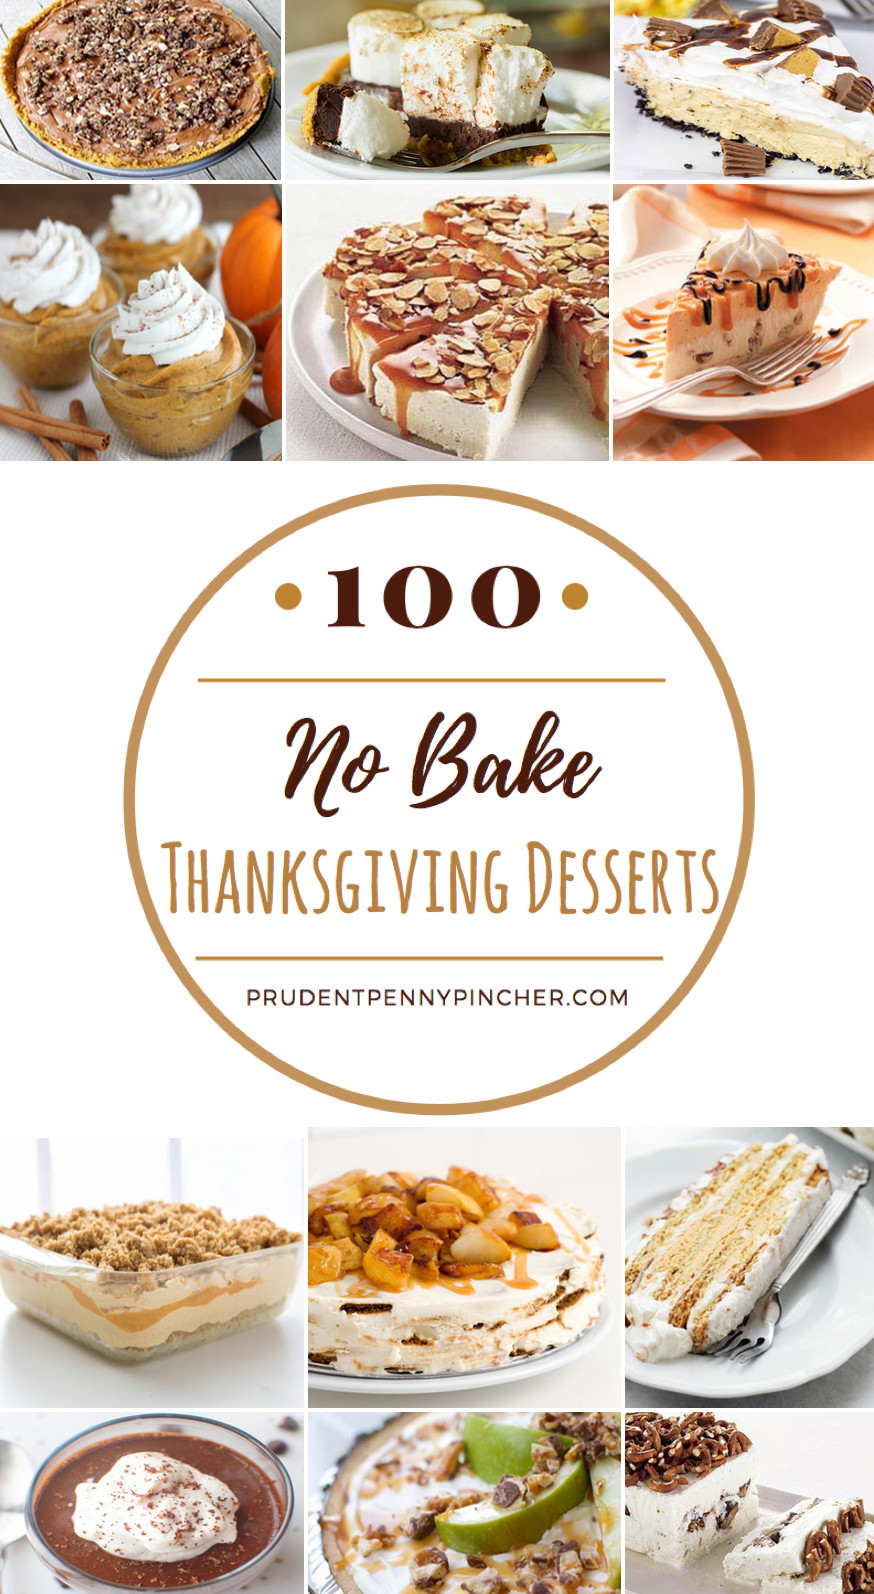 No Bake Thanksgiving Desserts  100 No Bake Thanksgiving Desserts Prudent Penny Pincher